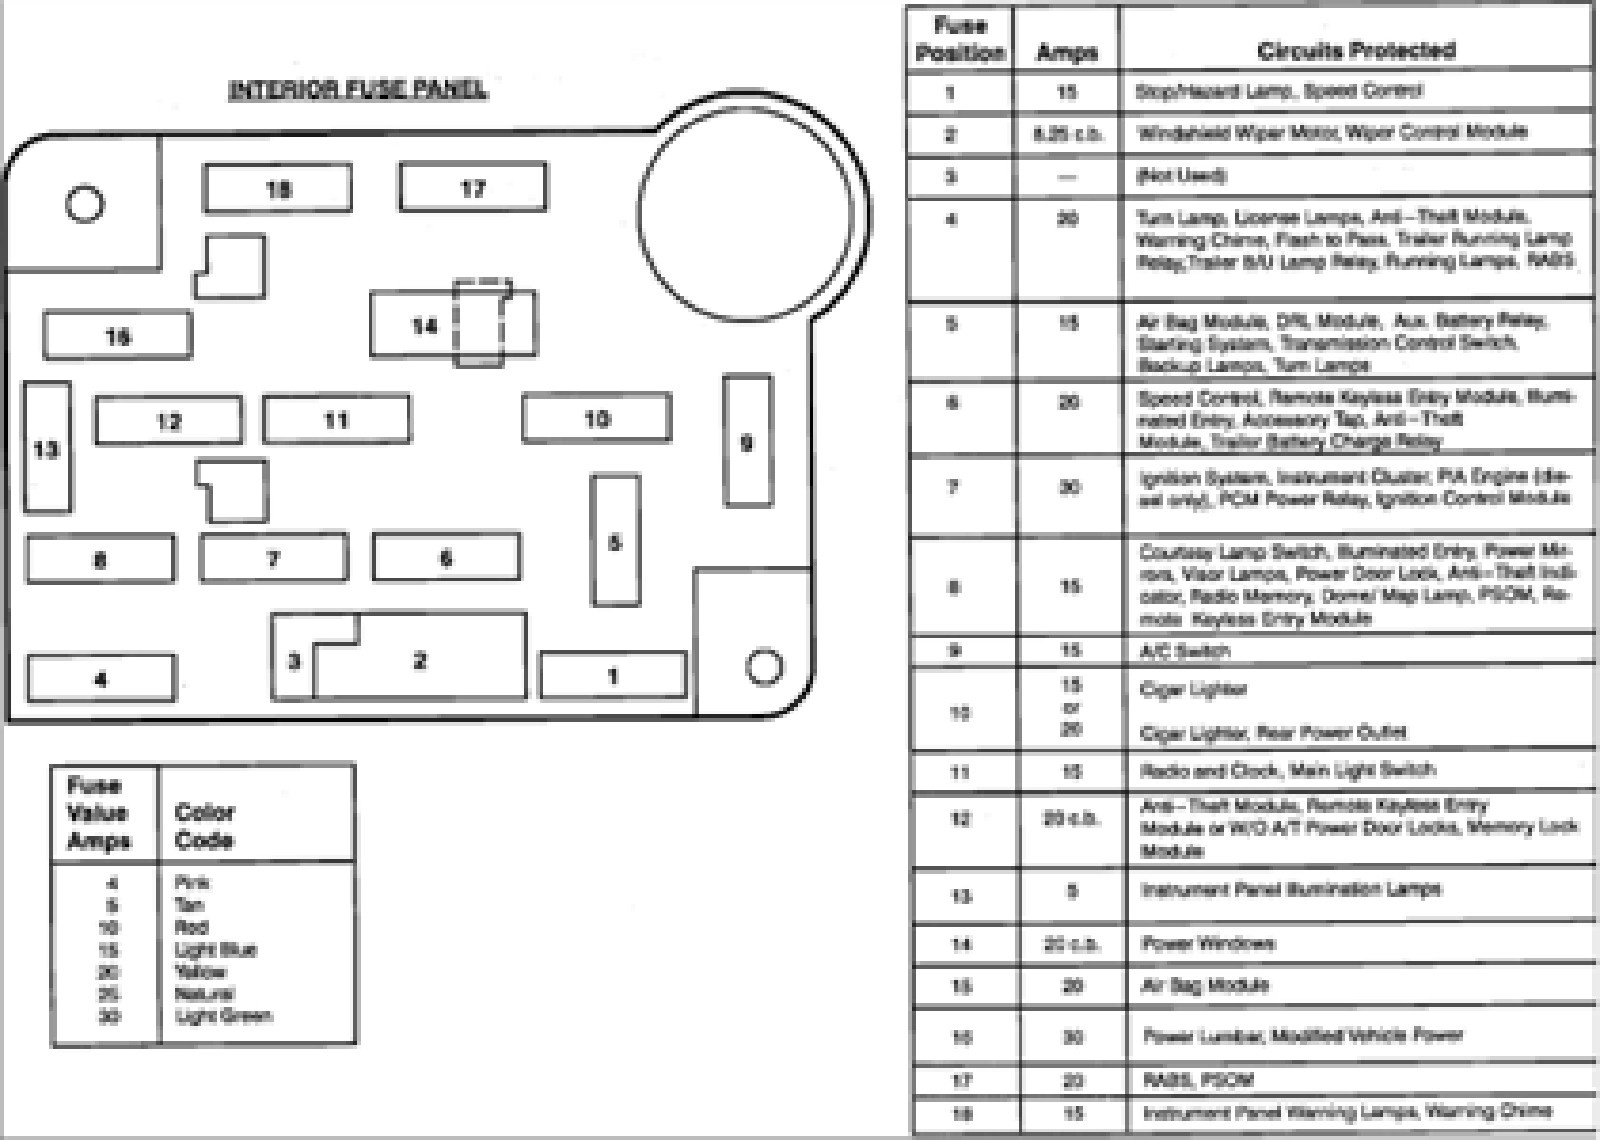 2010 econoline fuse box - pontiac grand prix ignition wiring diagram for wiring  diagram schematics  wiring diagram schematics